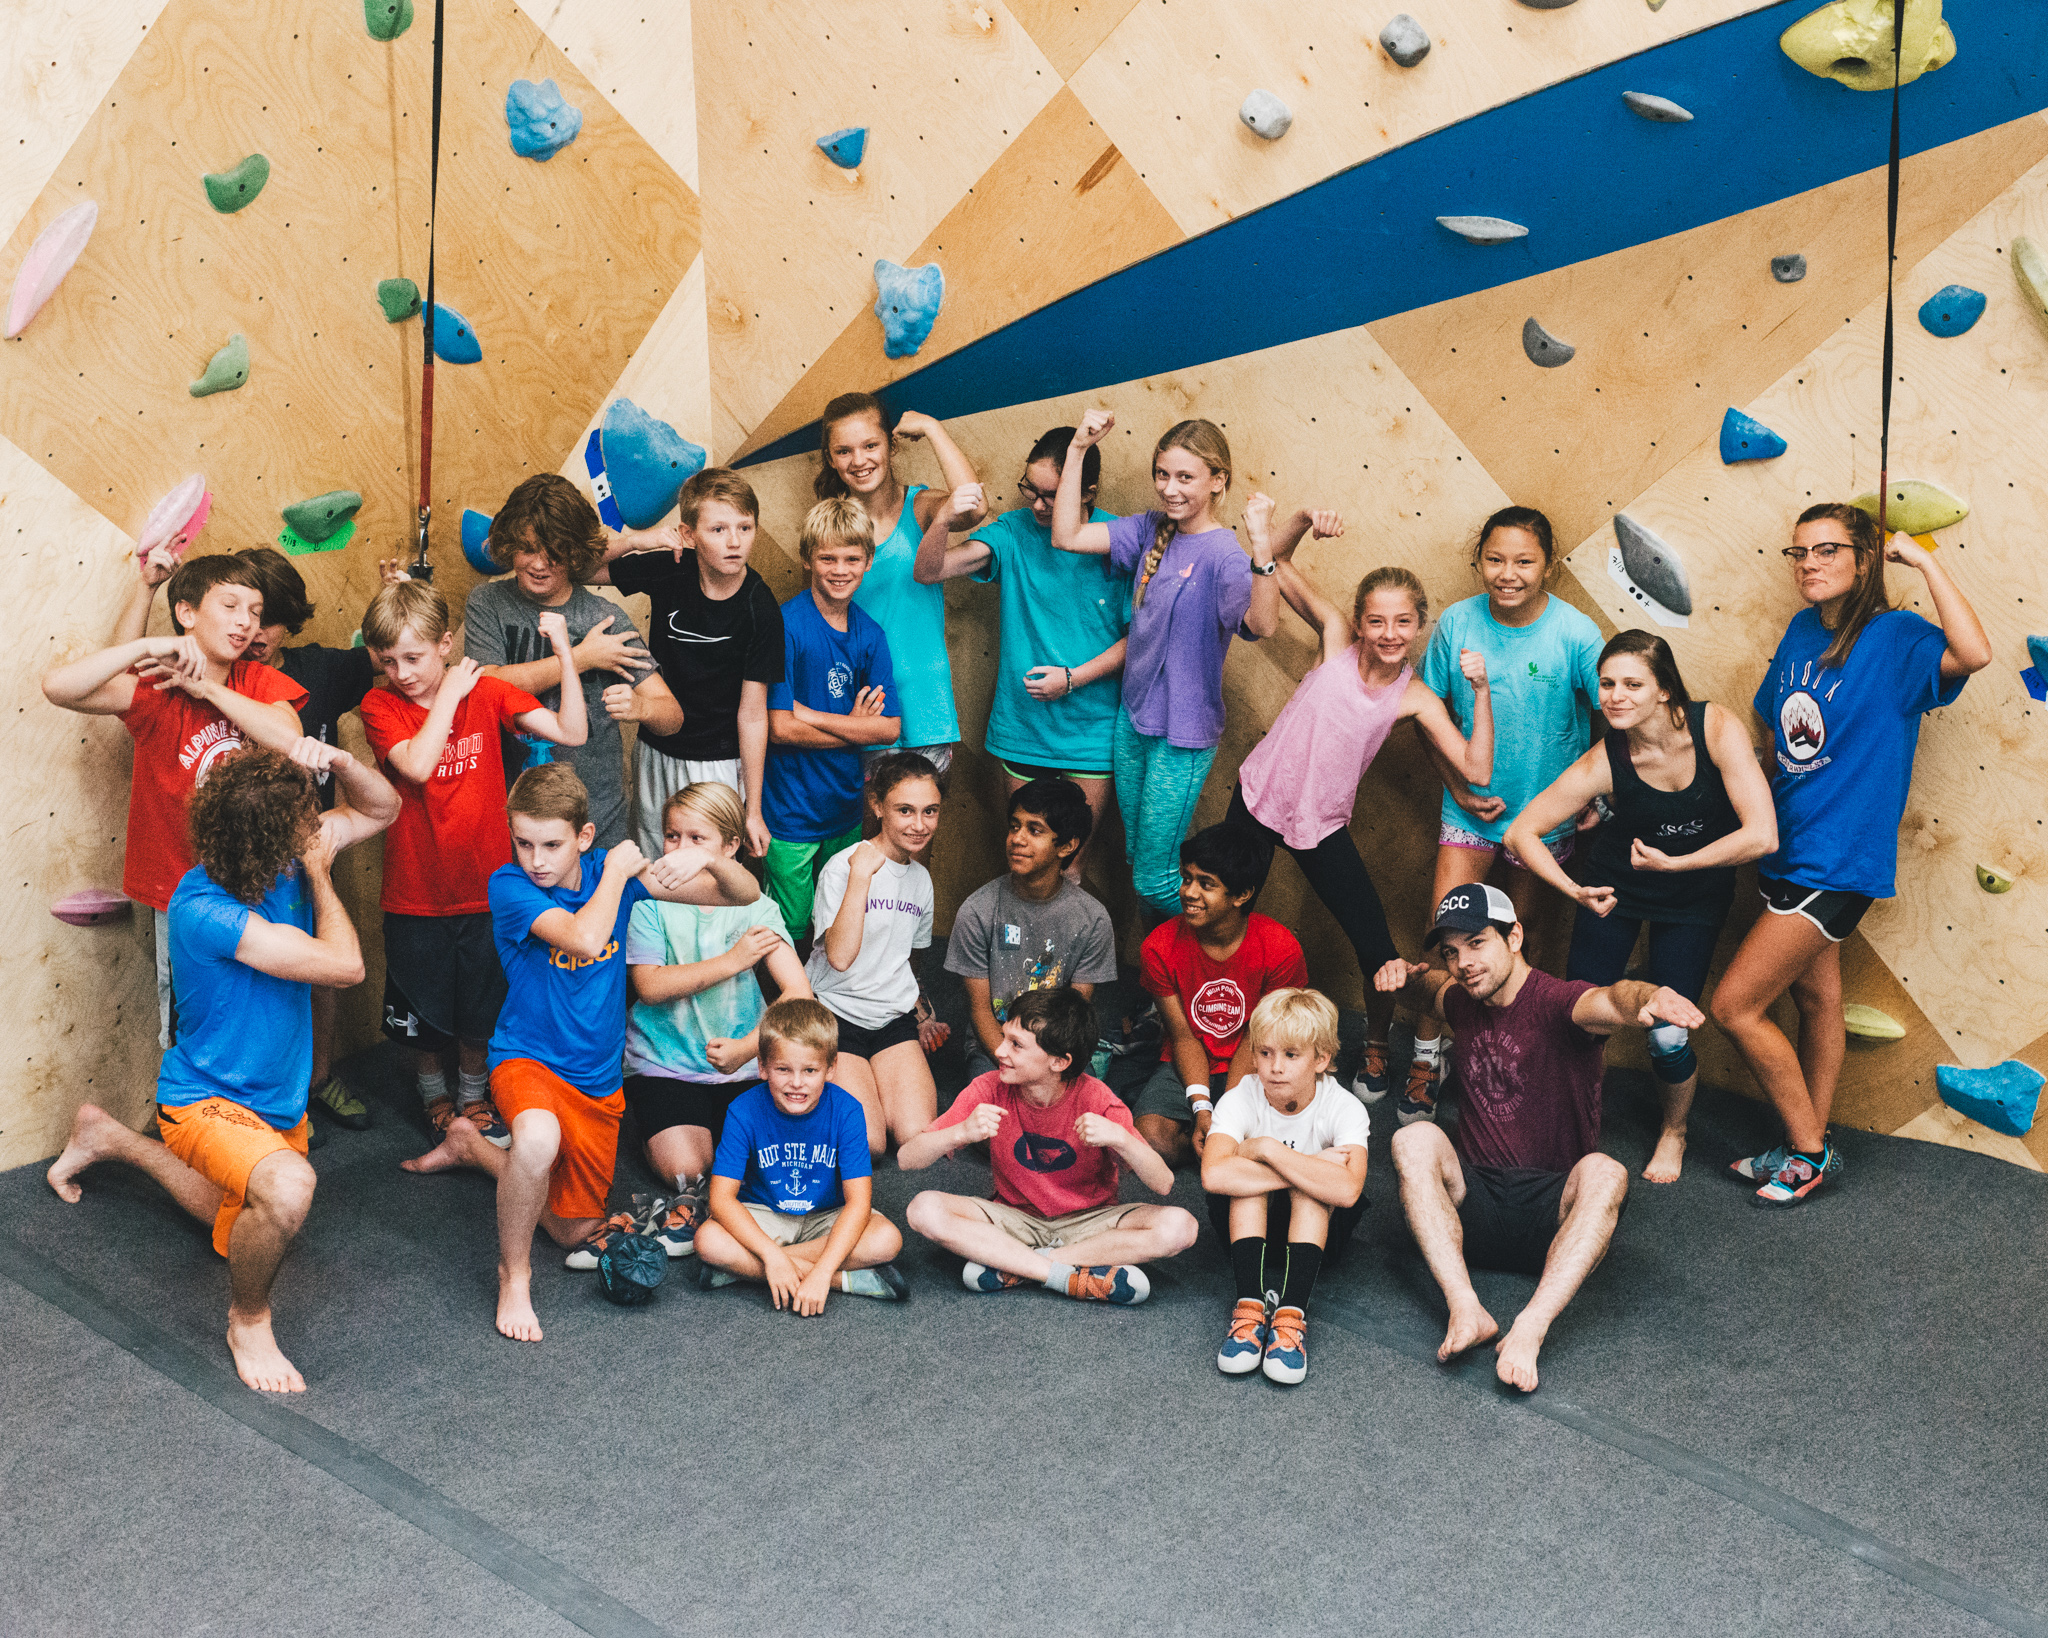 Join the climbing team every Monday and Wednesday from 5-7pm starting June 3rd!